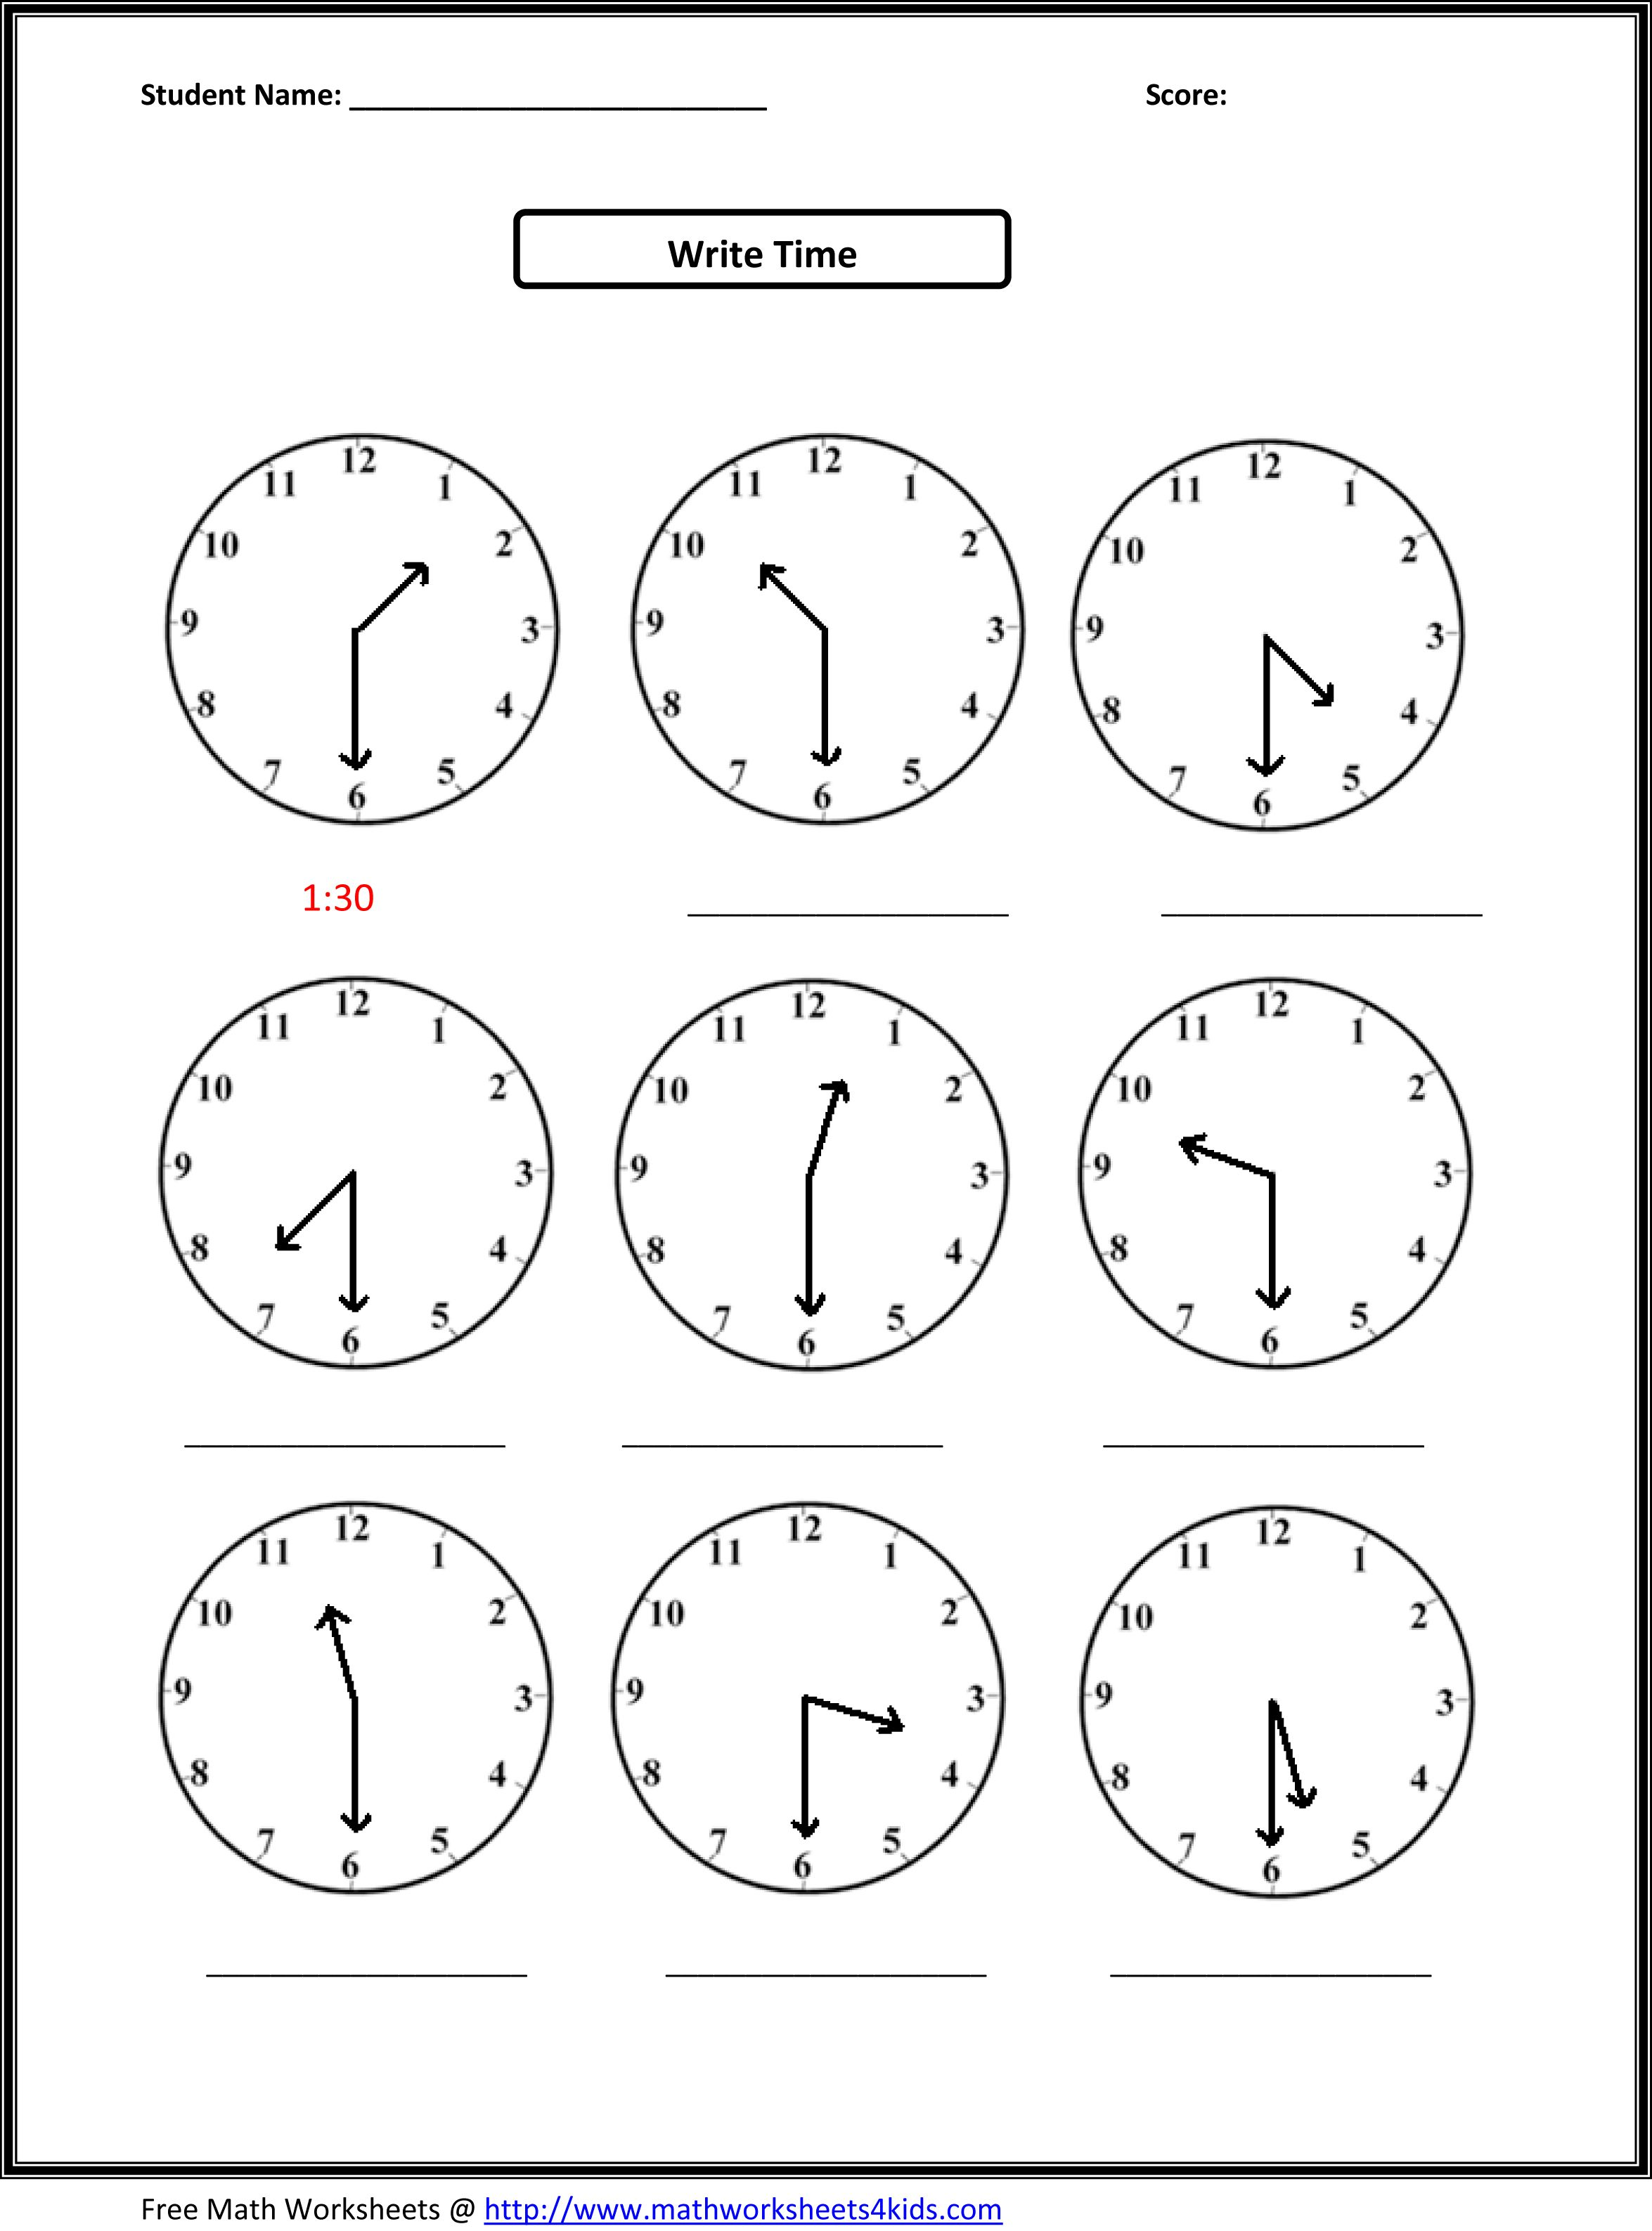 Proatmealus  Marvellous Worksheet On Time For Grade   Reocurent With Inspiring Free Printable Telling Time Worksheets Nd Grade  Reocurent With Enchanting Perimeter Of Irregular Shapes With Missing Sides Worksheets Also Pentagon Worksheets In Addition Addition Hidden Picture Worksheet And Classifying D Shapes Worksheet As Well As Expanding Single Brackets Worksheet Additionally Prefixes Suffixes Worksheets From Reocurentcom With Proatmealus  Inspiring Worksheet On Time For Grade   Reocurent With Enchanting Free Printable Telling Time Worksheets Nd Grade  Reocurent And Marvellous Perimeter Of Irregular Shapes With Missing Sides Worksheets Also Pentagon Worksheets In Addition Addition Hidden Picture Worksheet From Reocurentcom